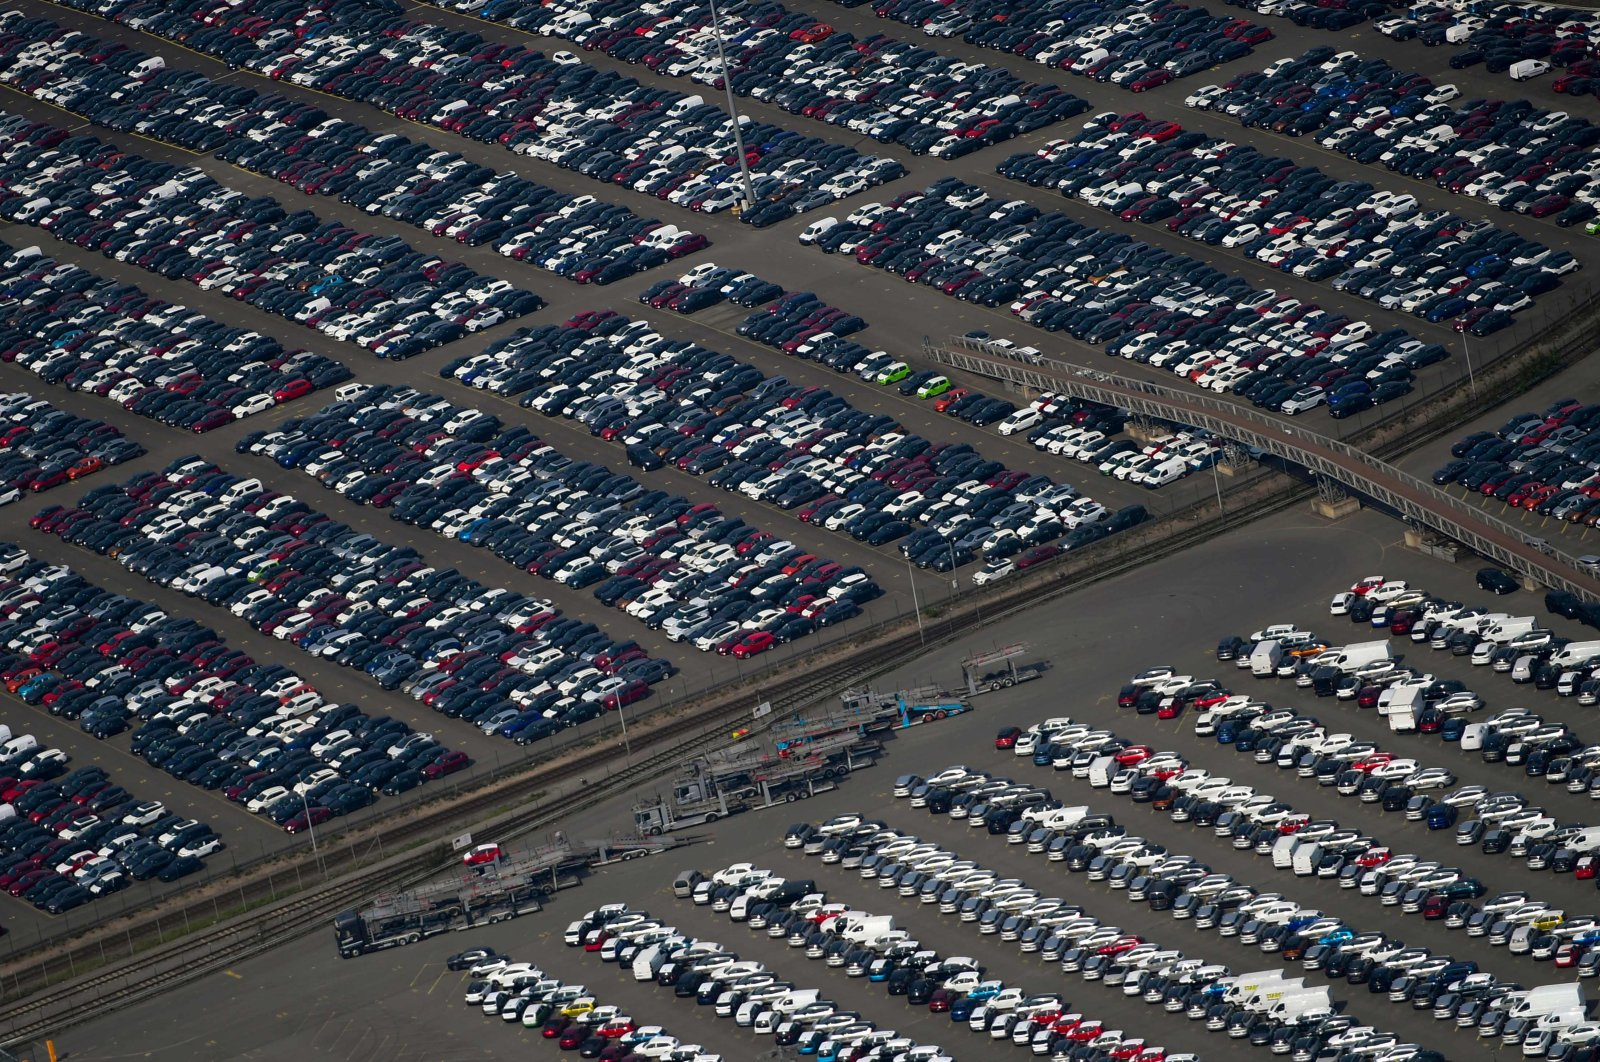 This aerial file photo shows new cars for sale parked at the harbor of Duisburg, western Germany, May 8, 2020. (AFP Photo)